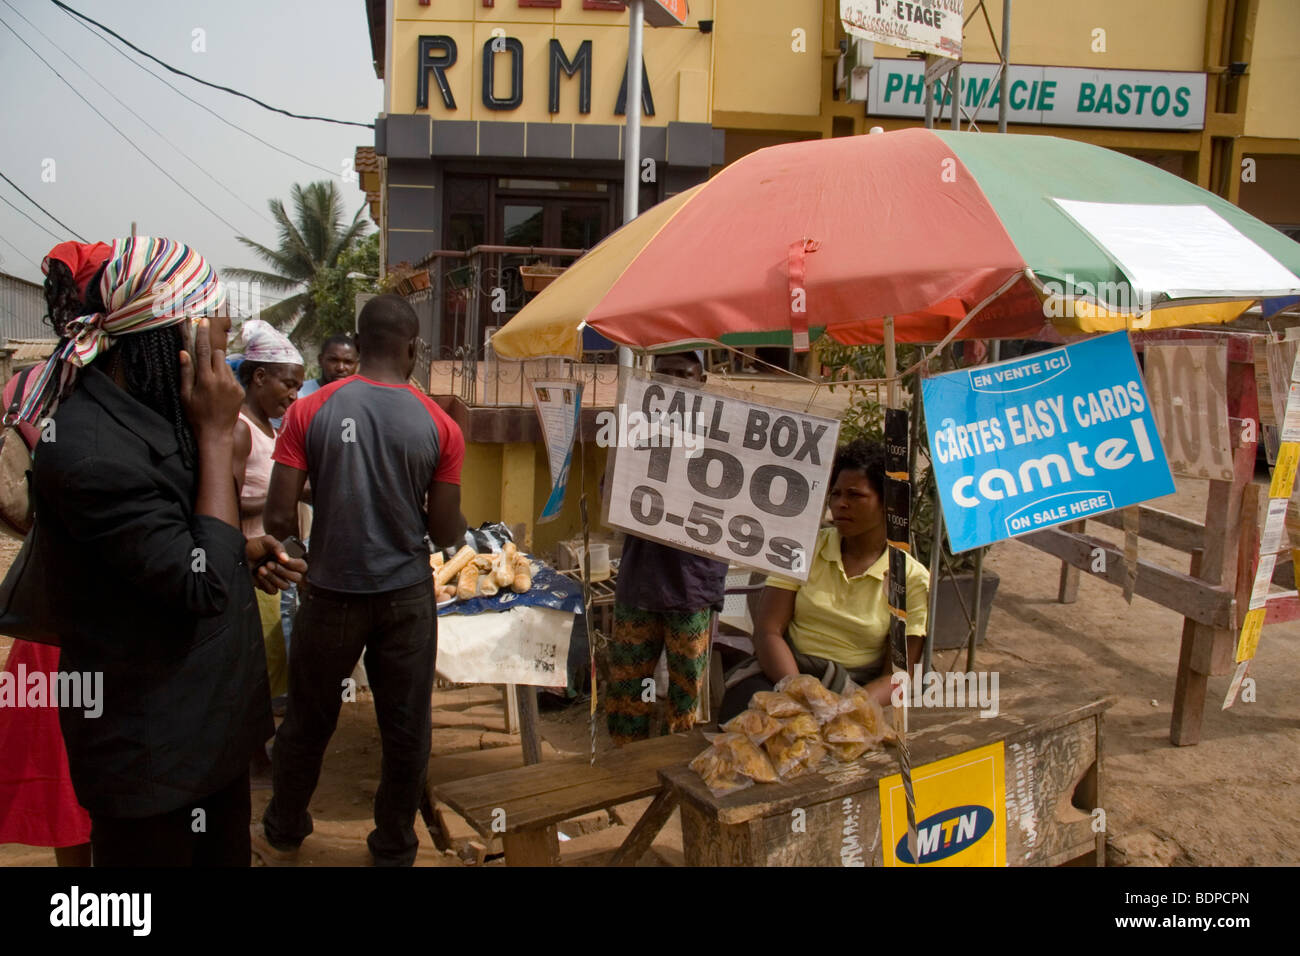 Street stall called a 'Call Box' selling mobile phone airtime credit and cards Yaound Cameroon West Africa - Stock Image